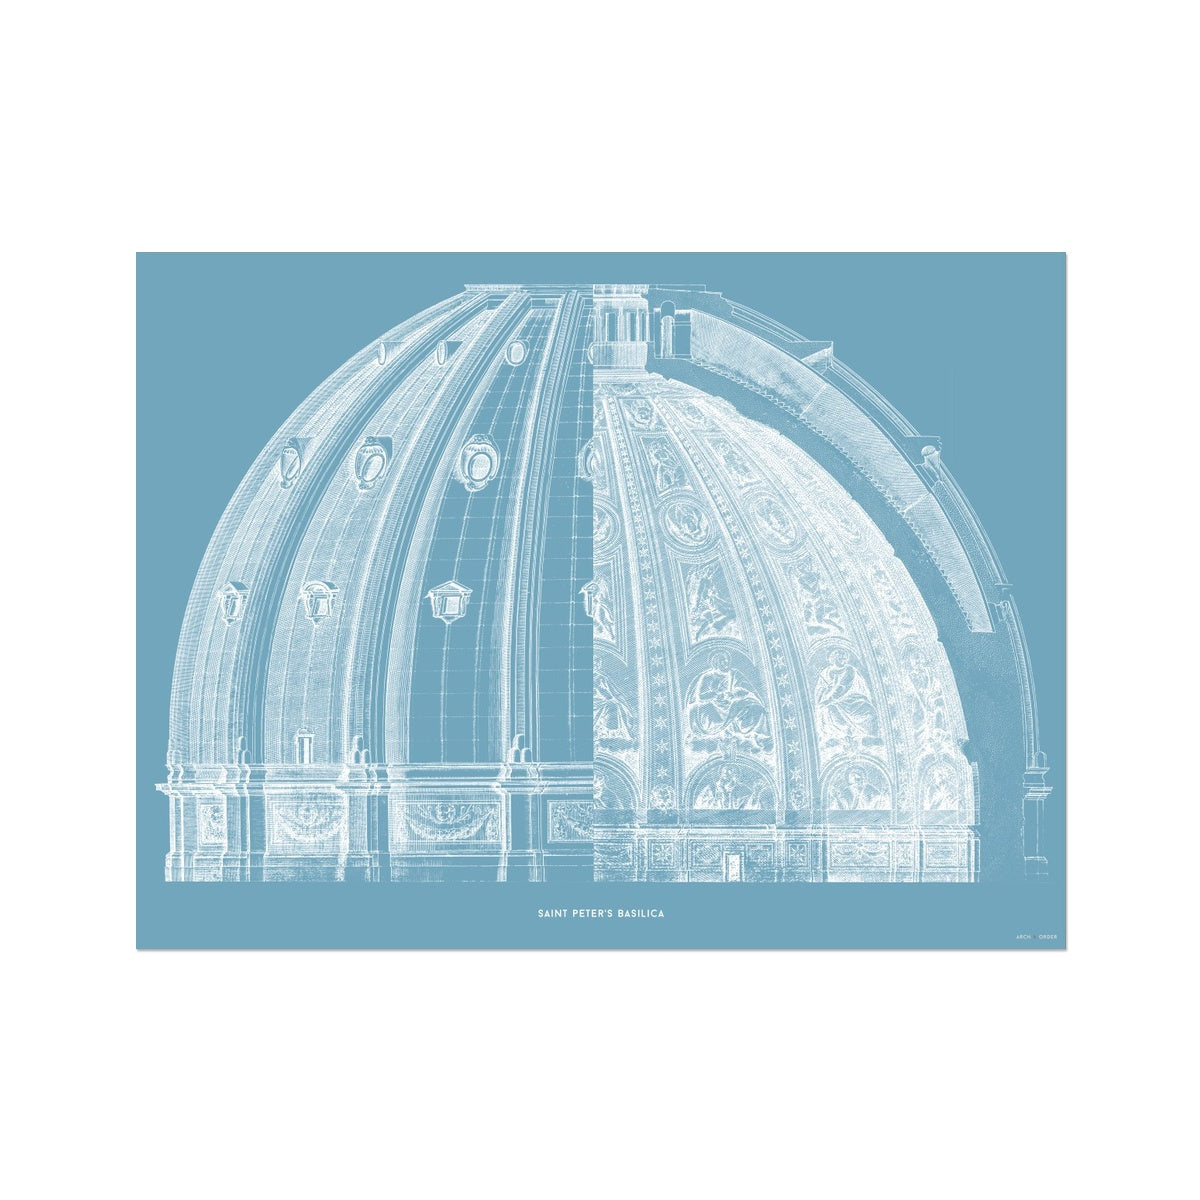 Saint Peter's Basilica - Dome Cross Section - Blue -  Etching Paper Print